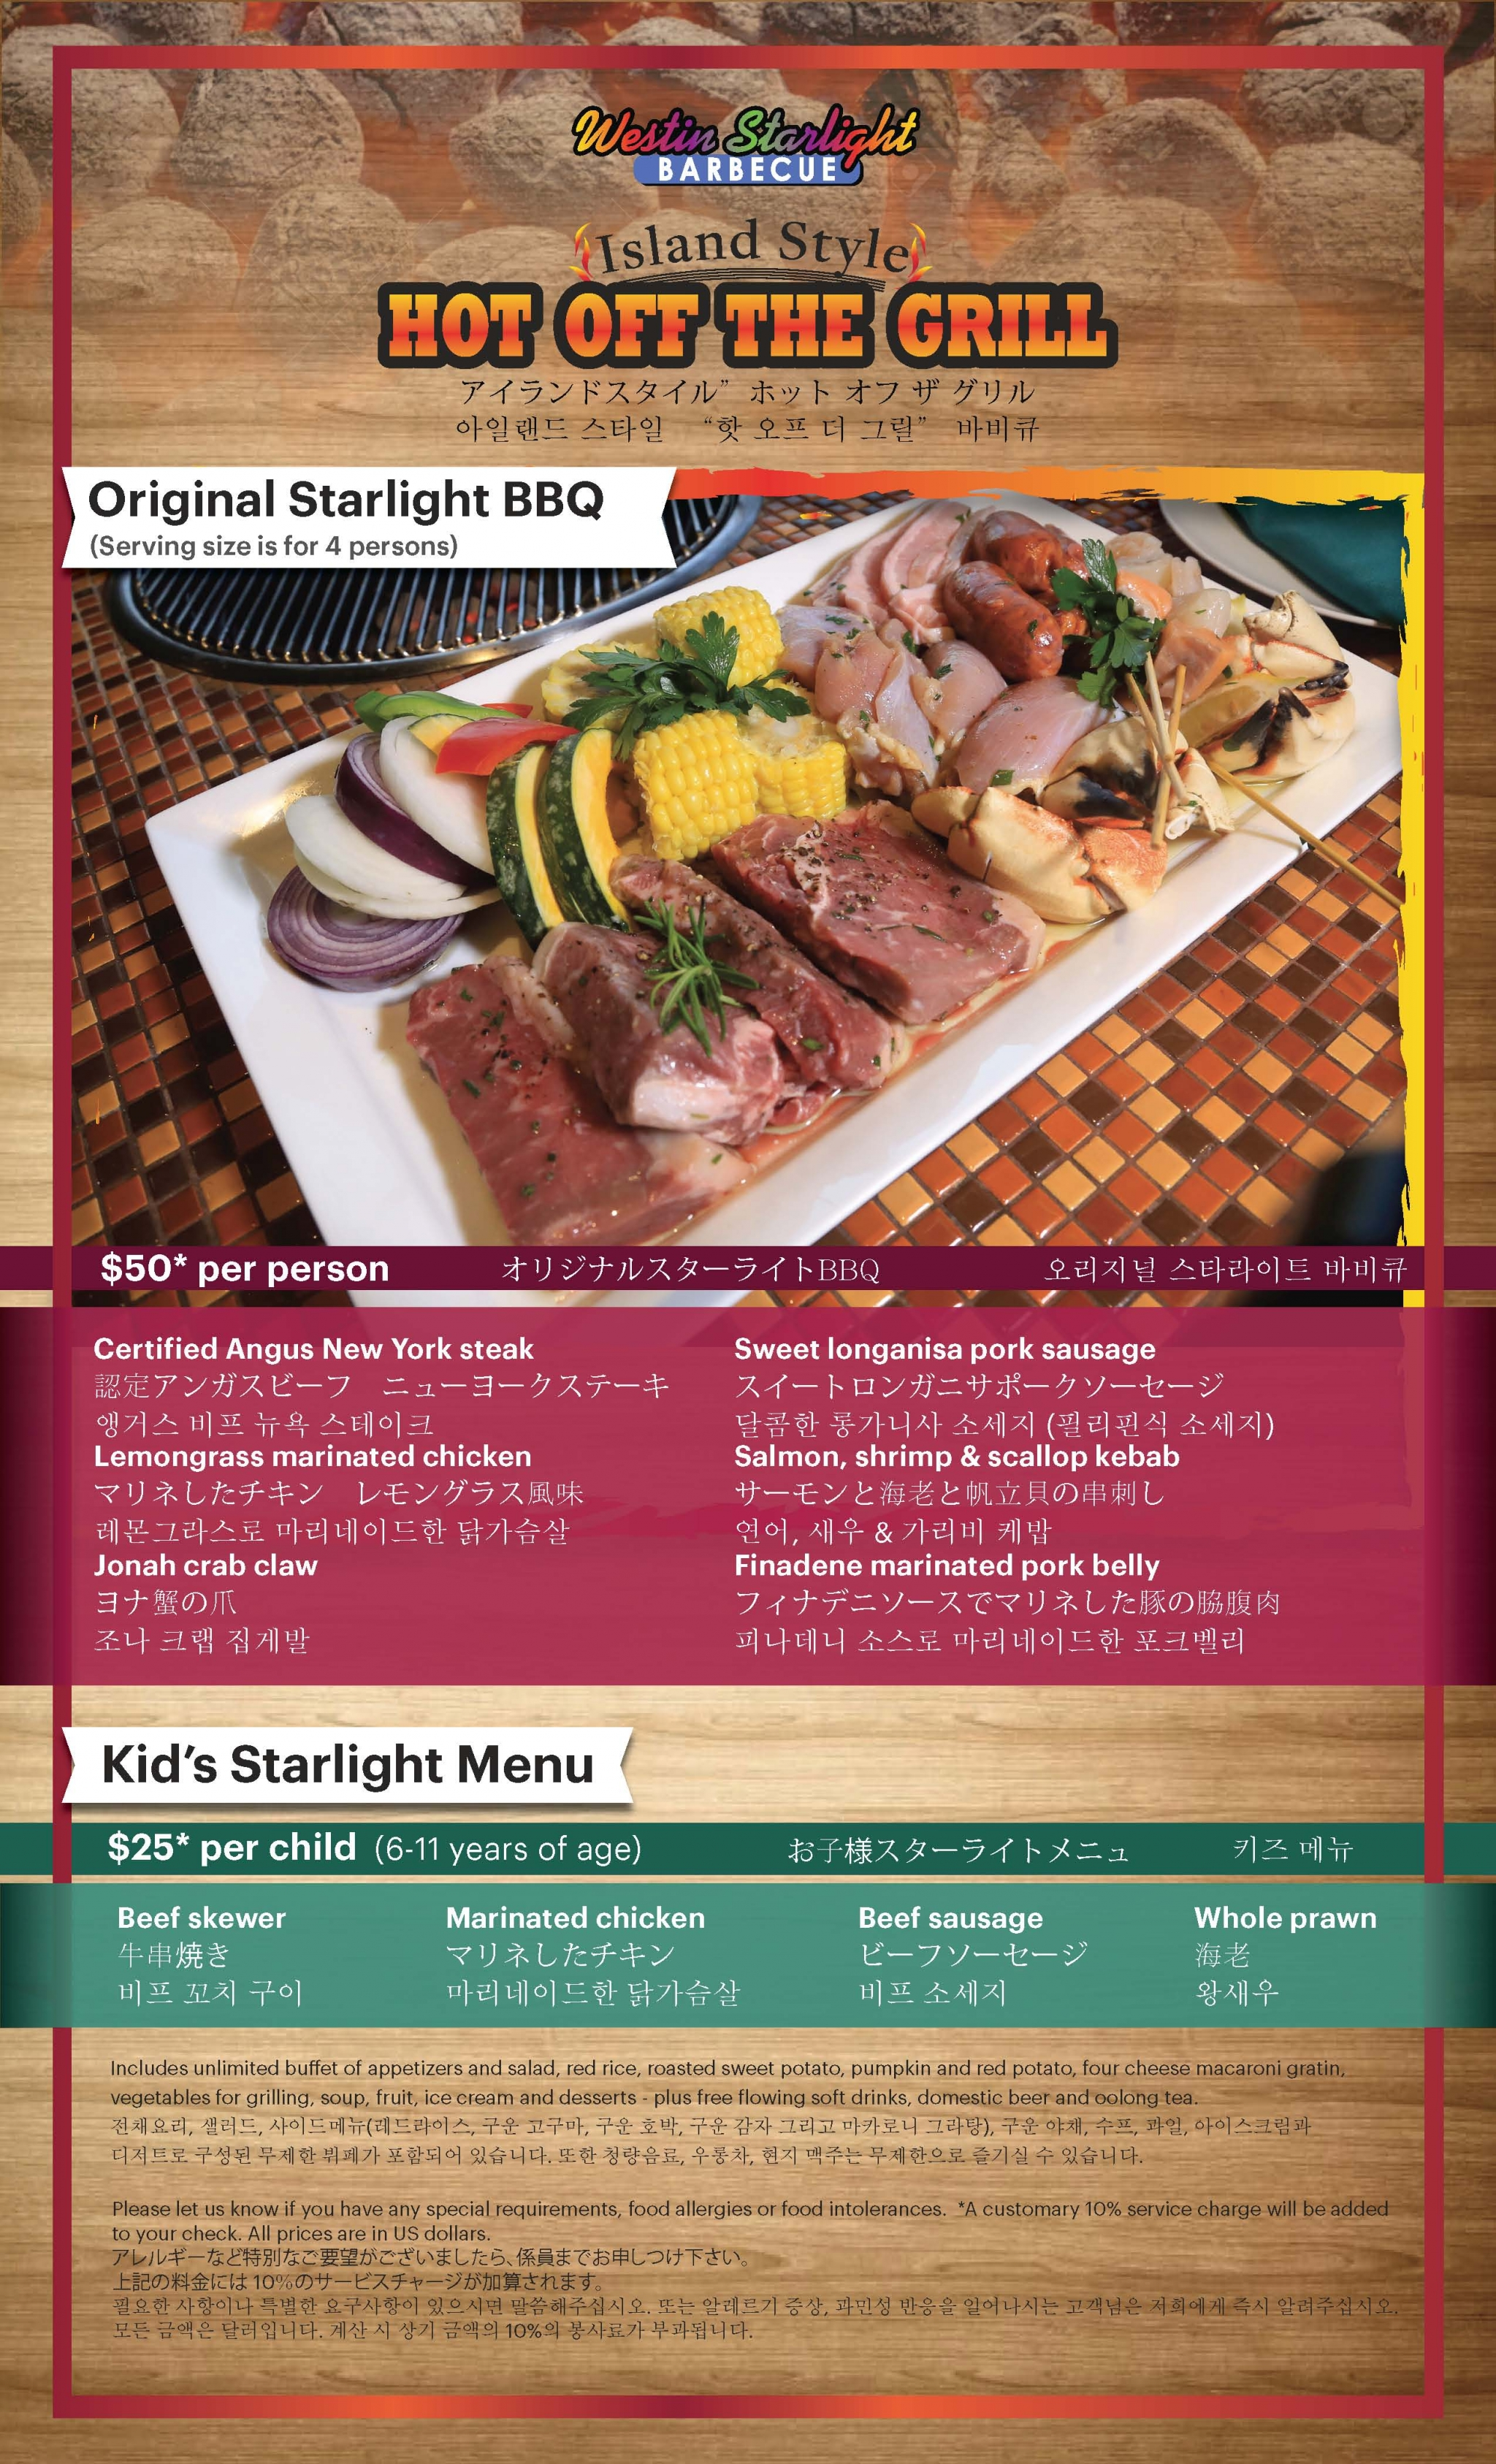 Guam beachfront original Starlight BBQ.  All-you-can eat salad bar and beverages.